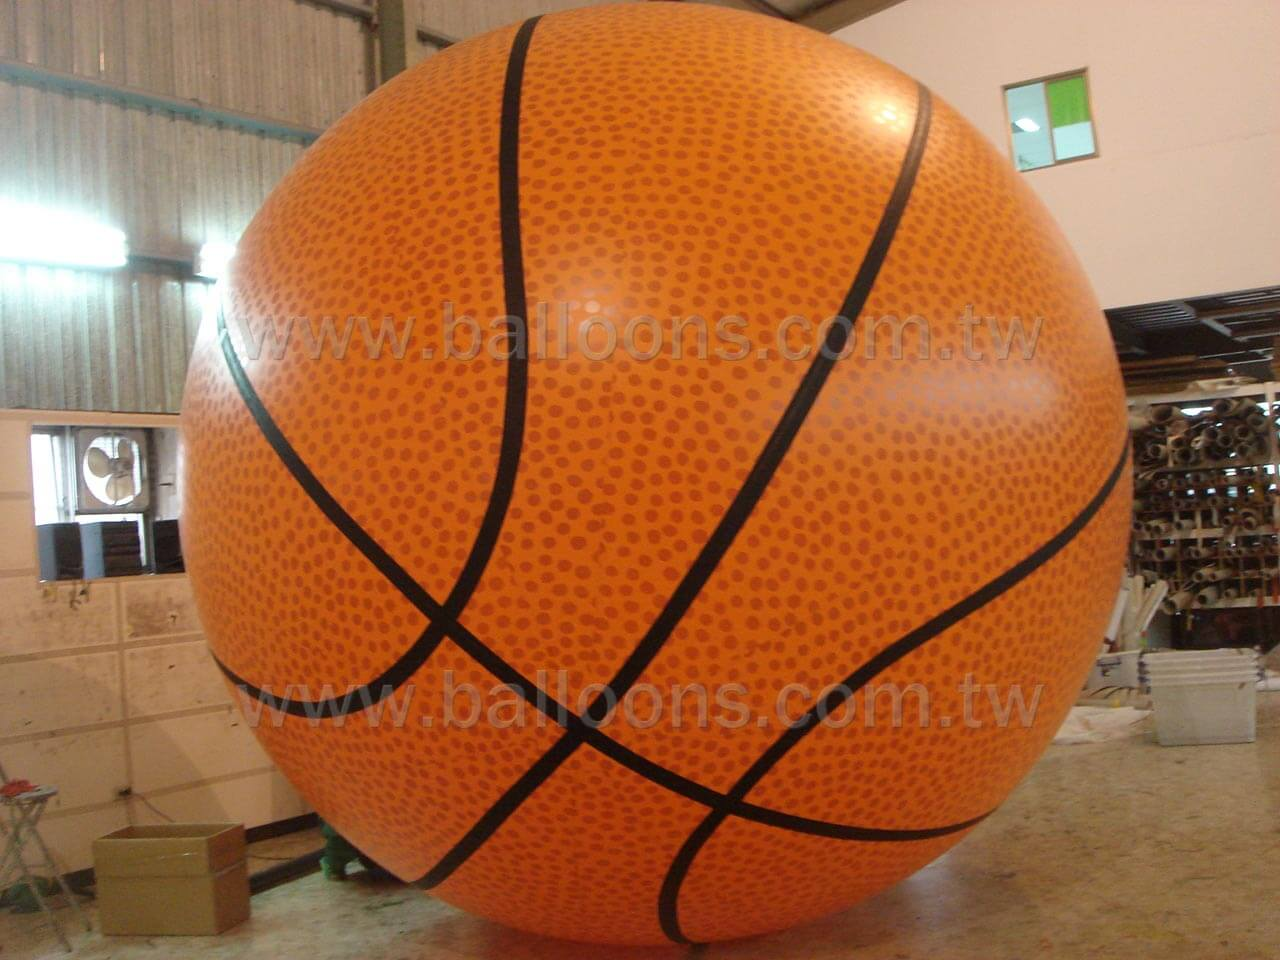 Inflatable advertising basketball balloon with printed patterns藍球廣告氣球